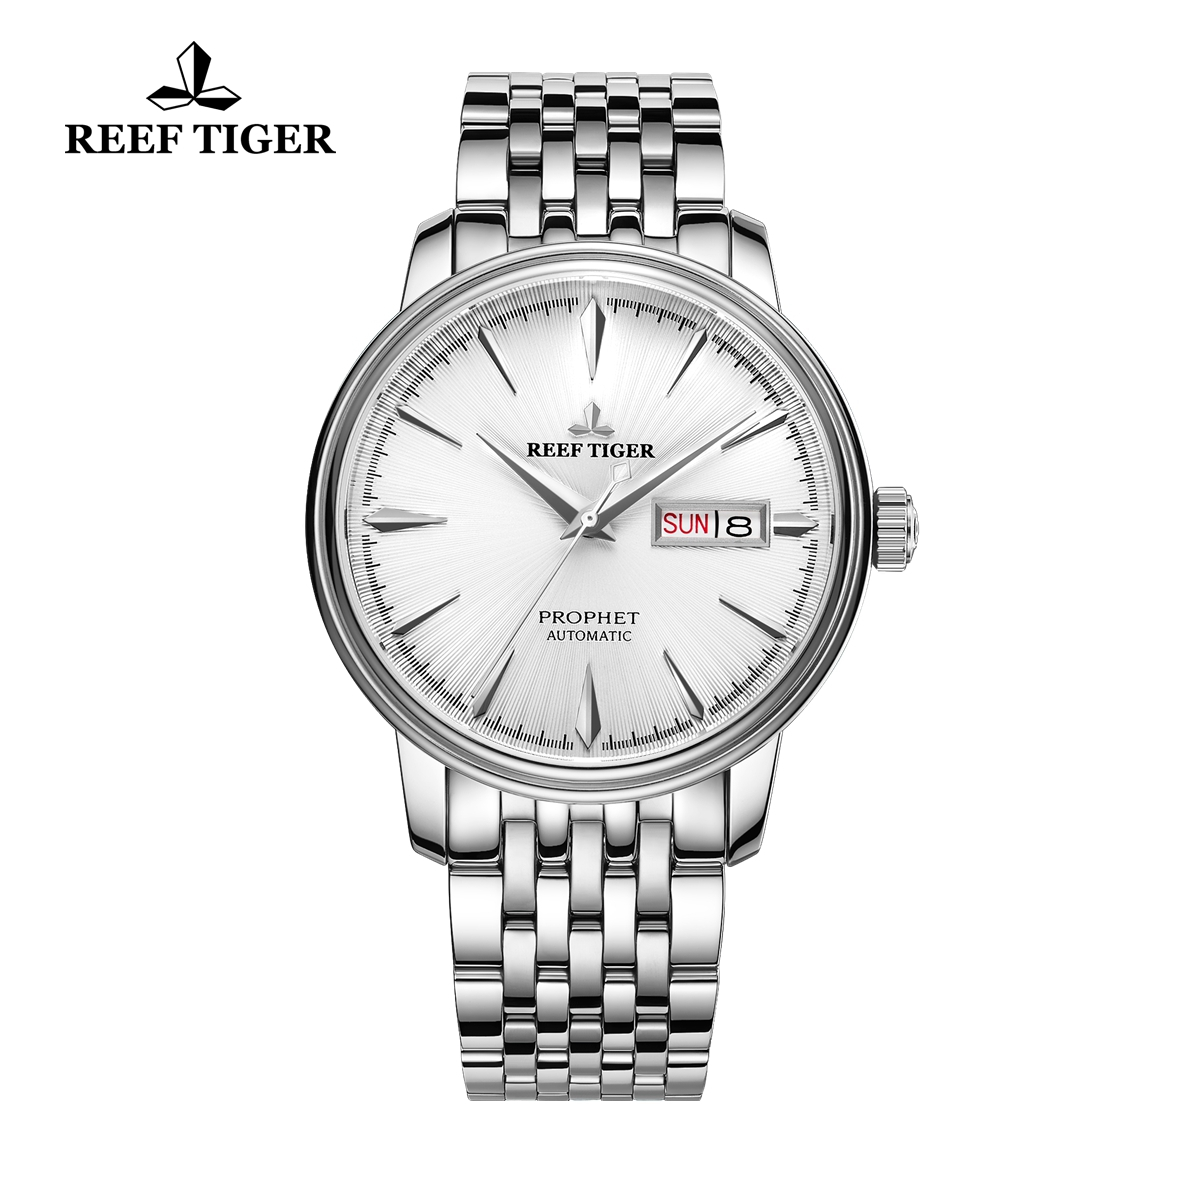 Reef Tiger Prophet Men's Fashion Automatic Business Steel White Dial Watch RGA8236-YWY